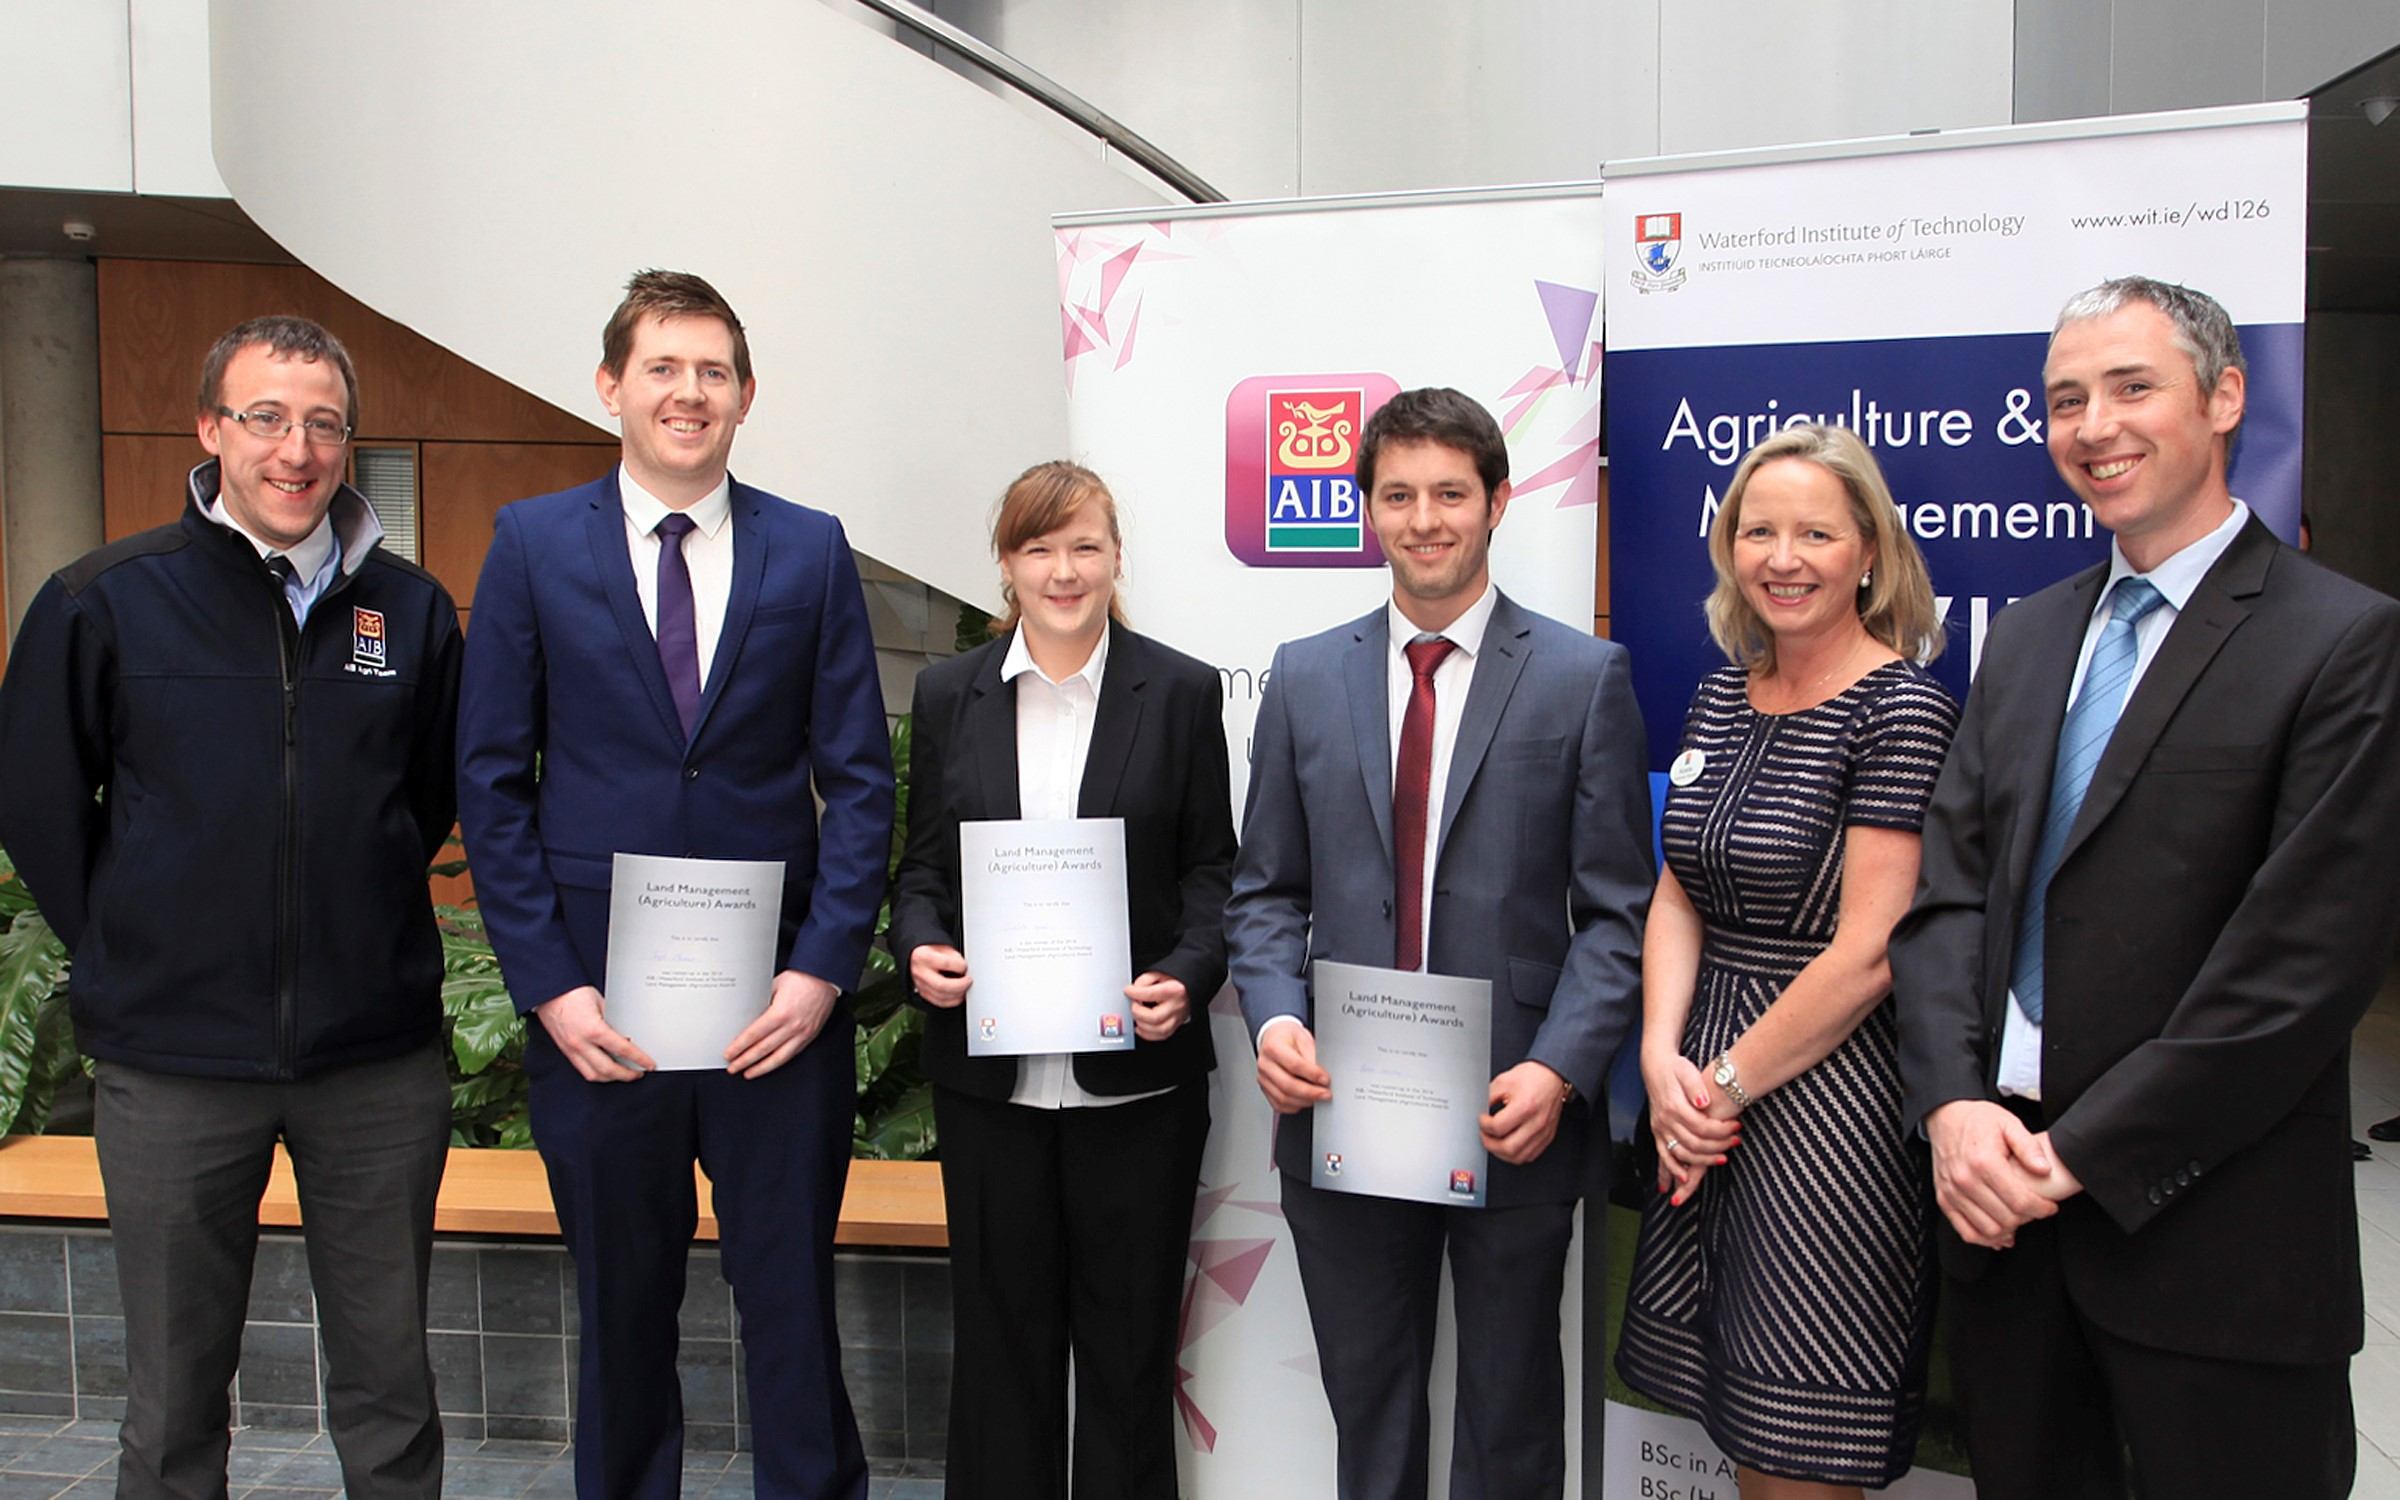 Pictured at the inaugural AIB Land Management (Agriculture) Awards in Waterford IT were Shane Whelan, AIB Agri Team; Joe Mannion, Galway (Second runner-up); Brian Crowley, Cork (First runner-up); Charlotte English, Tipperary (Overall Winner); Noelle Chambers, AIB Waterford IT Branch and Dr. Tony Woodcock Agri Science WIT